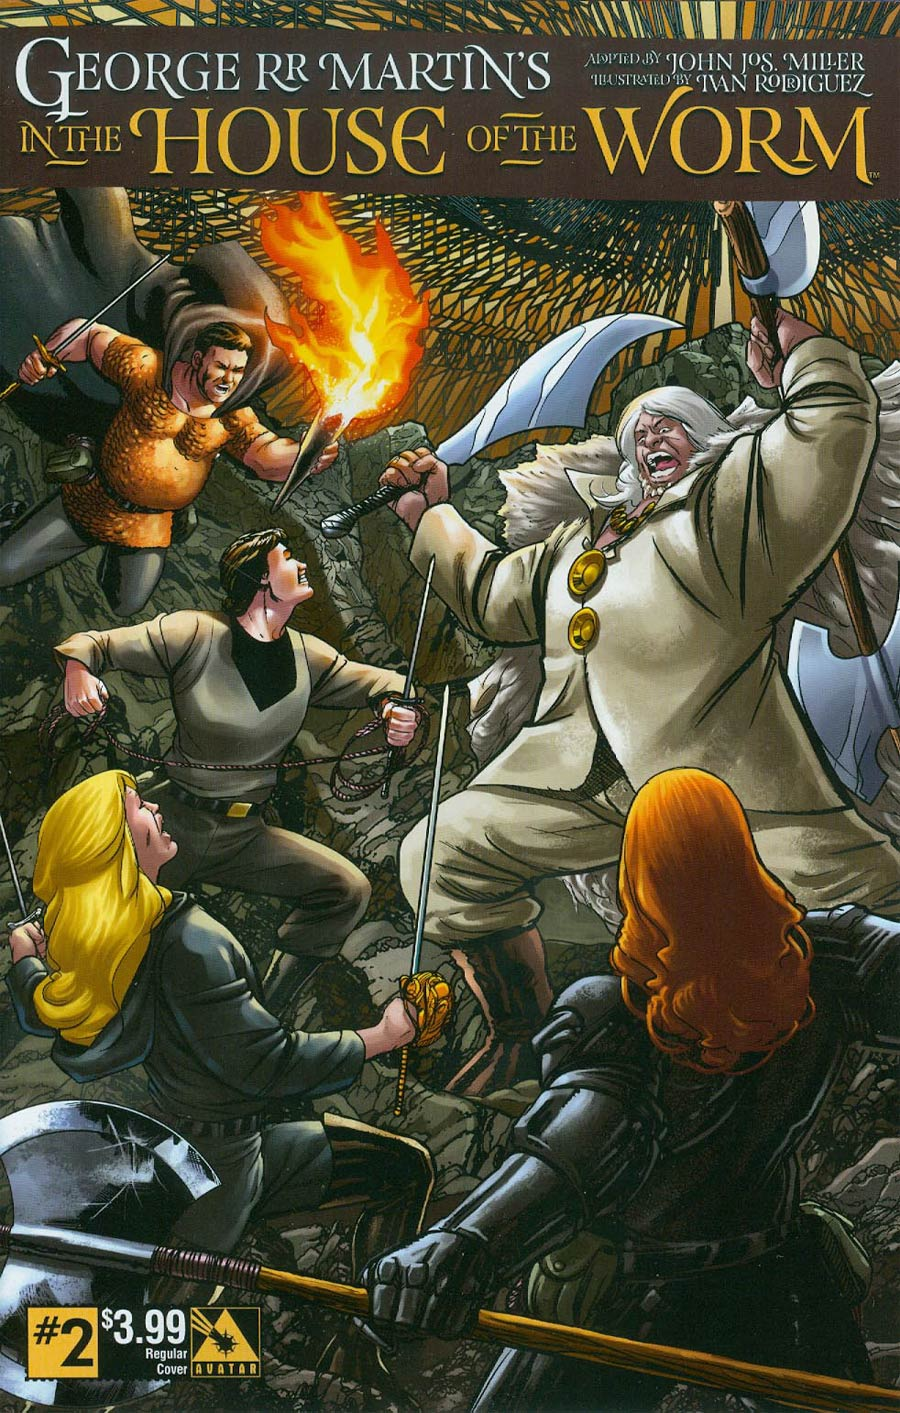 George RR Martin In The House Of The Worm #2 Cover A Regular Cover